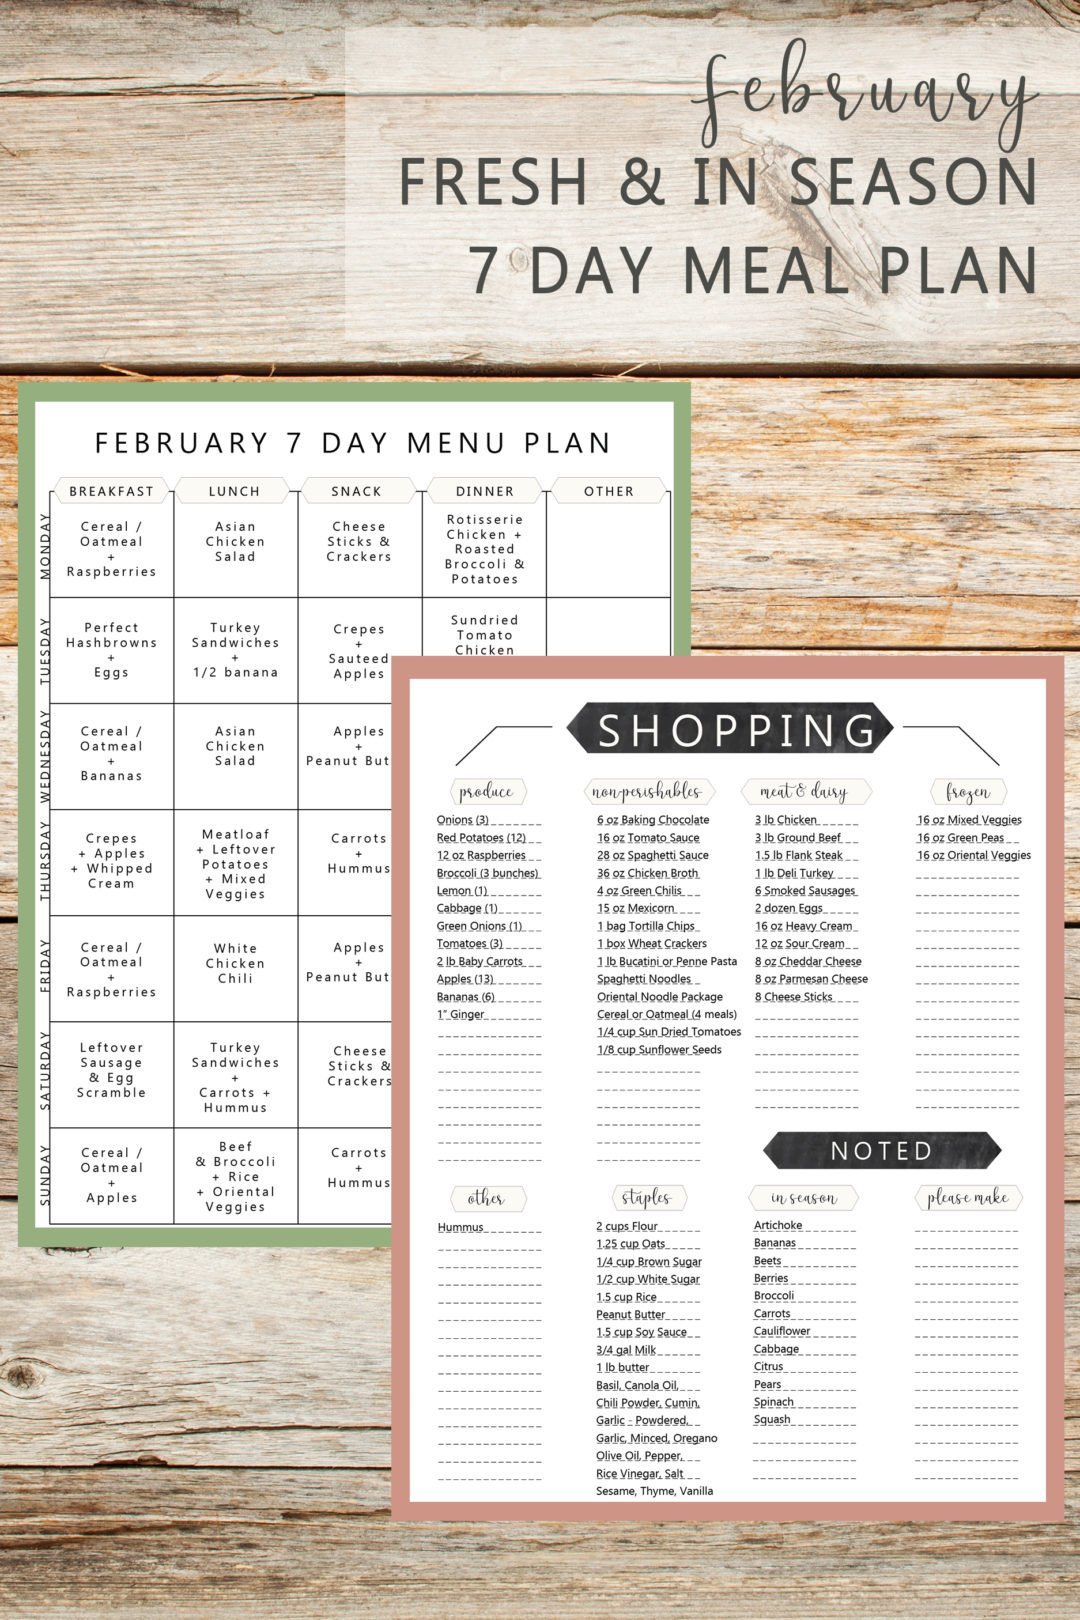 photo relating to Chilis Printable Menu referred to as February 7 Working day Menu Program The Honest Desk